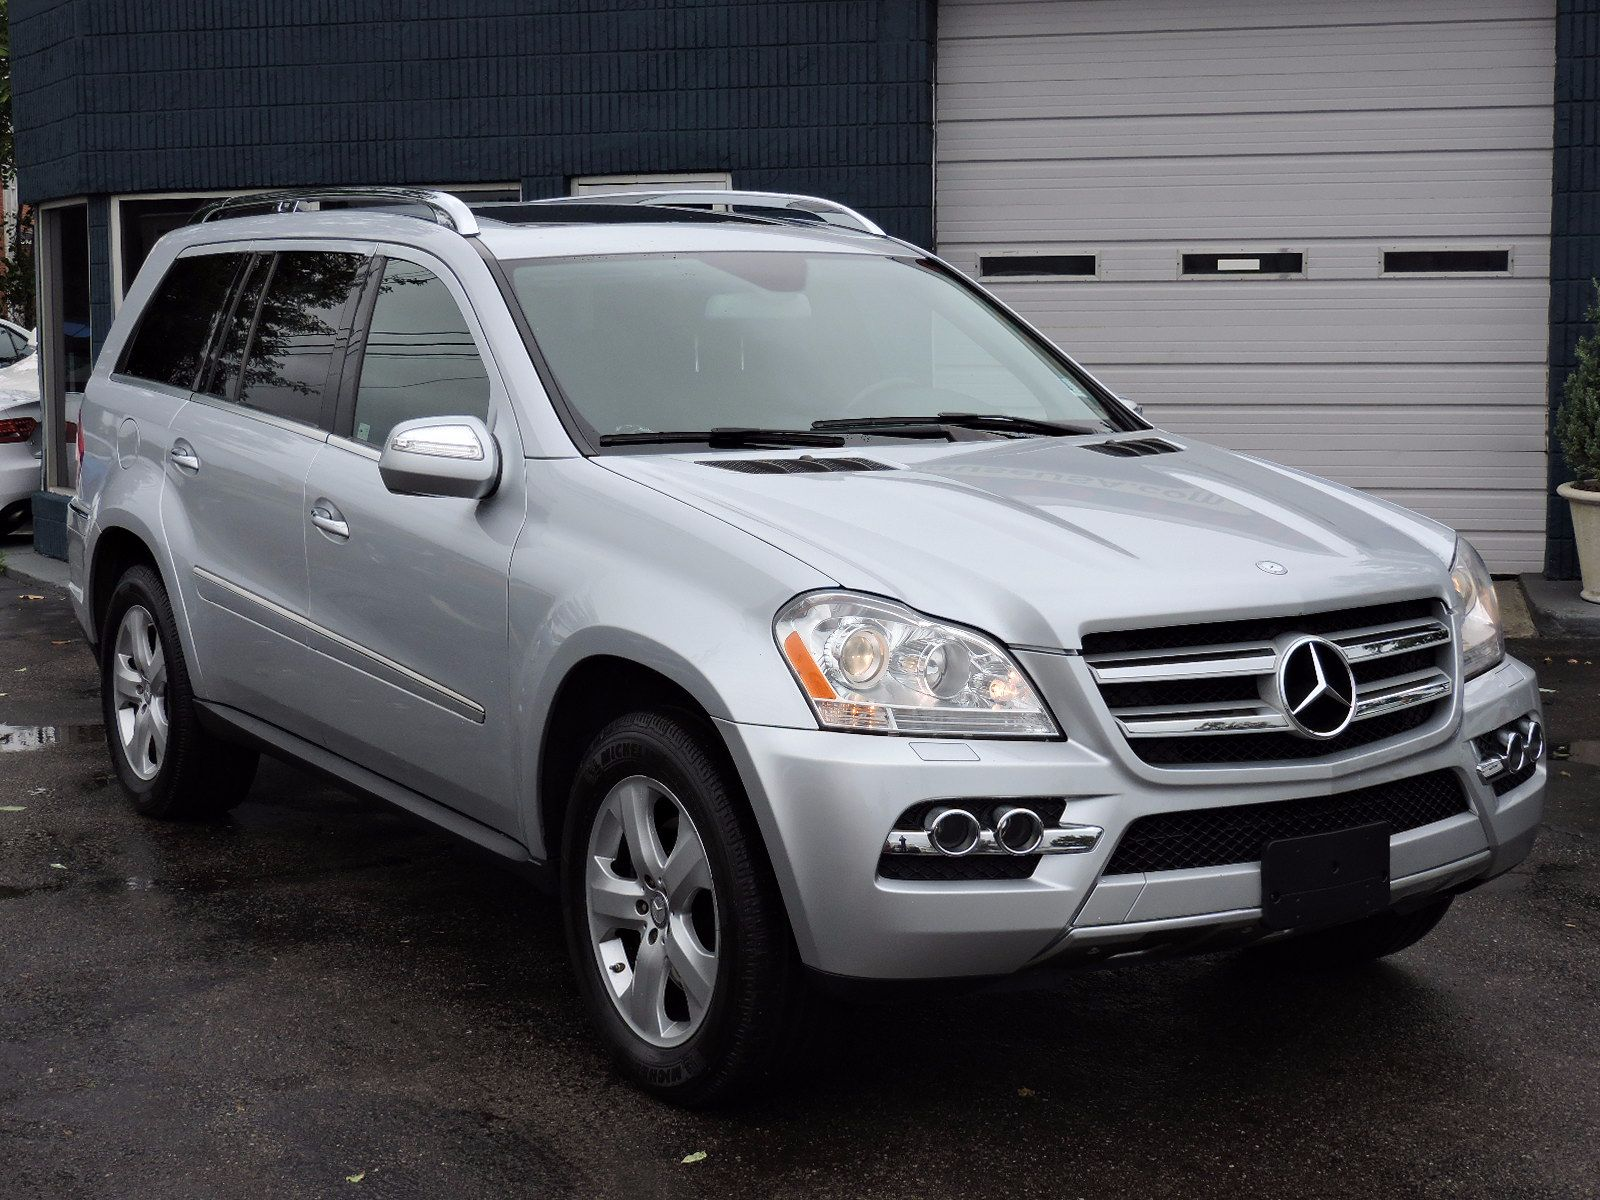 2010 Mercedes-Benz GL 450 - 4Matic - All Wheel Drive - Navigation